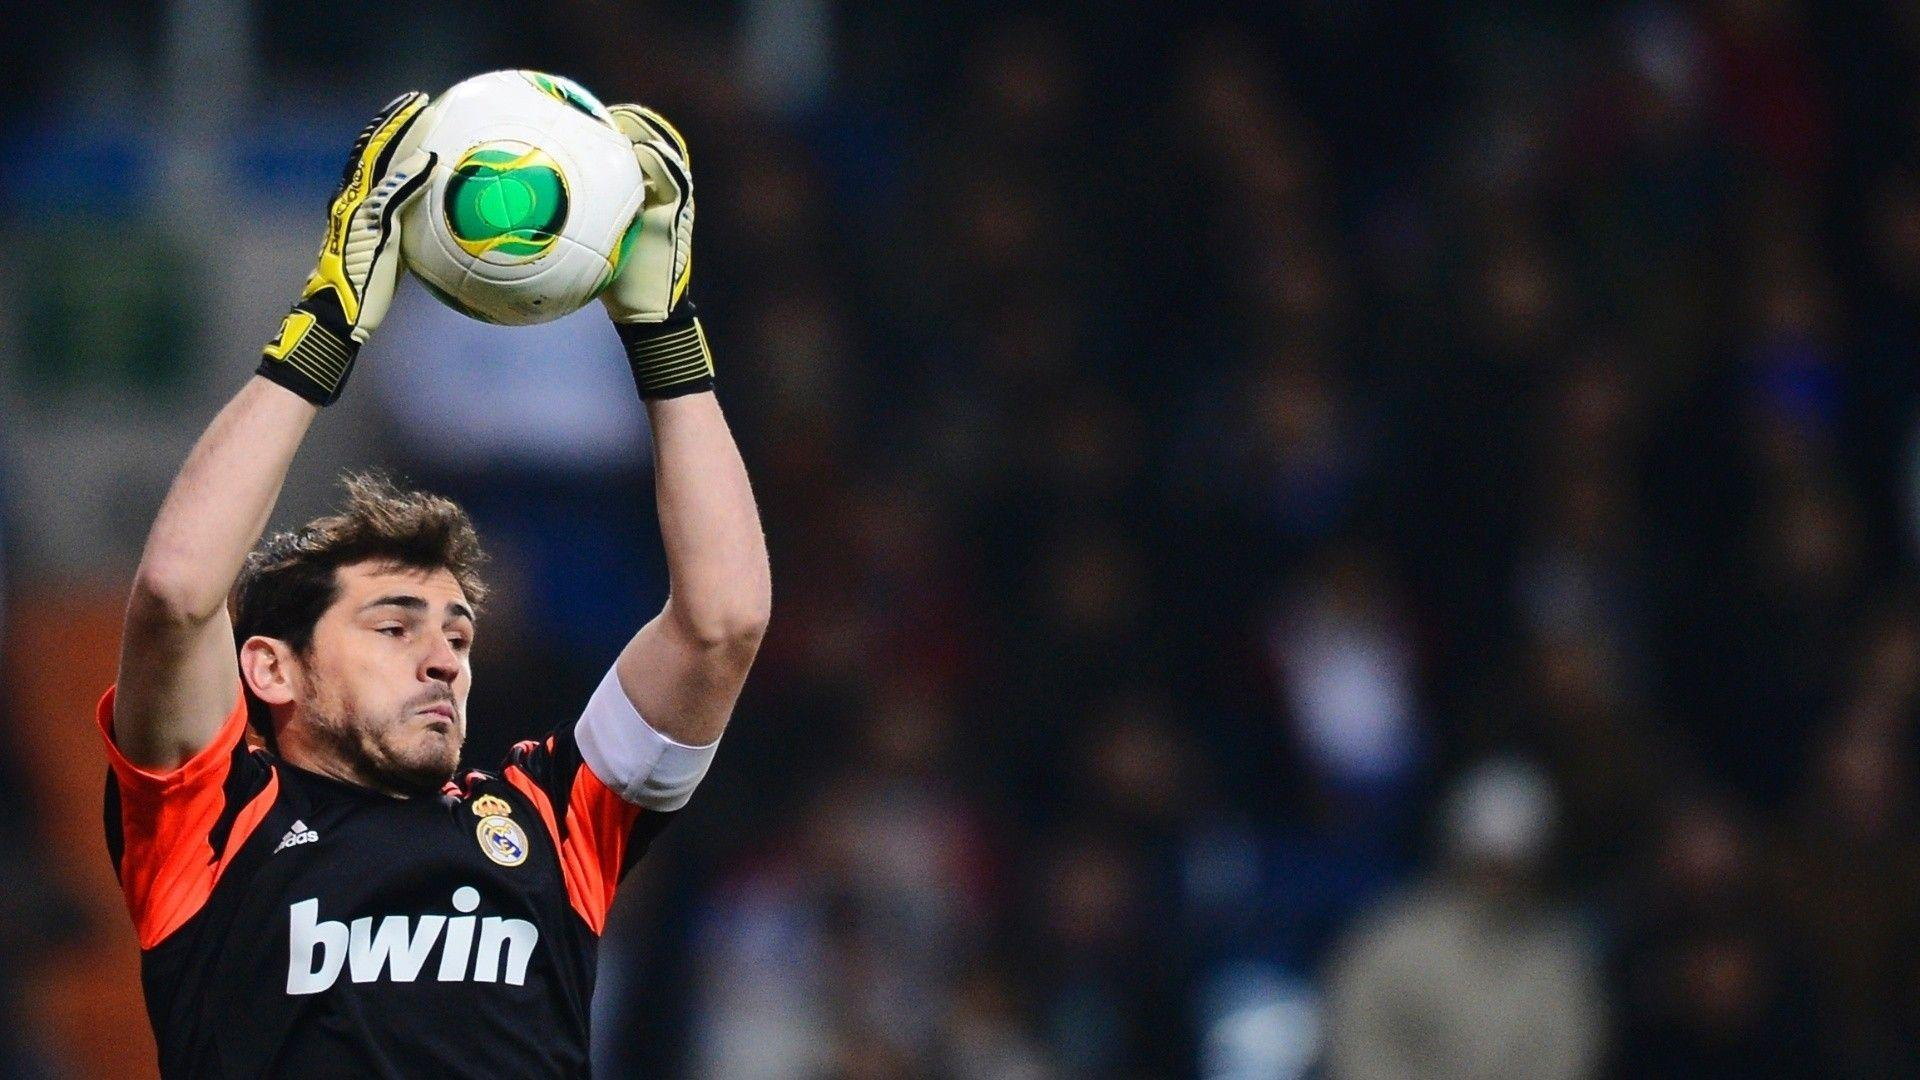 Iker Casillas HD Wallpapers - New HD Images